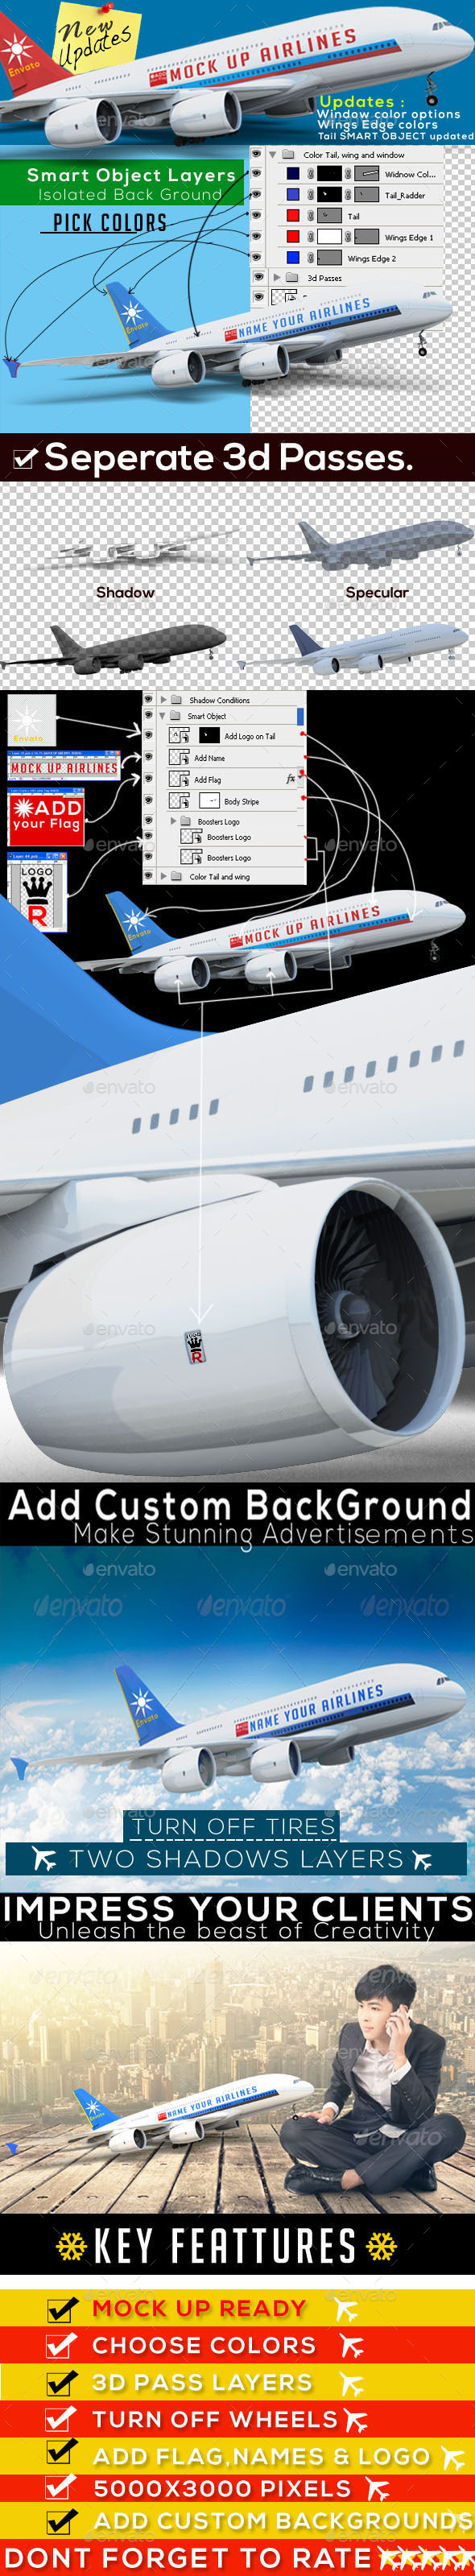 Airplane Advertising Mockup - A380 - Miscellaneous 3D Renders